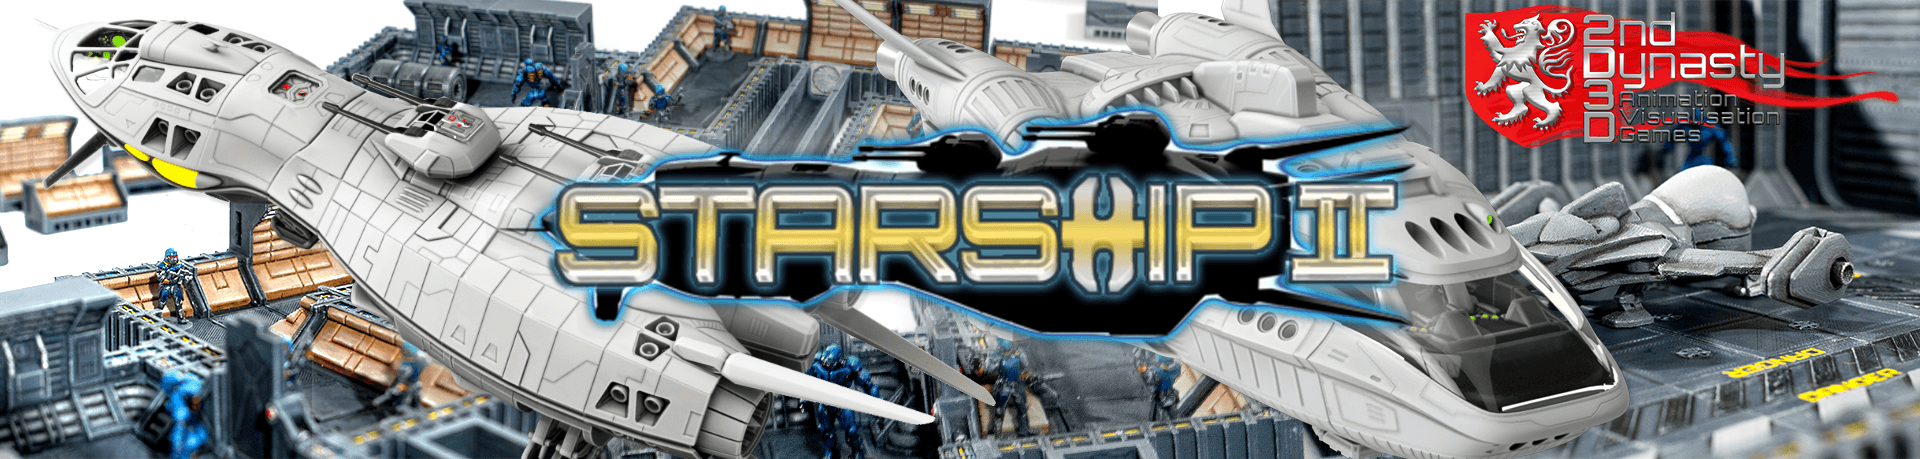 Now available - 2nd Dynasty's StarshipII Series!